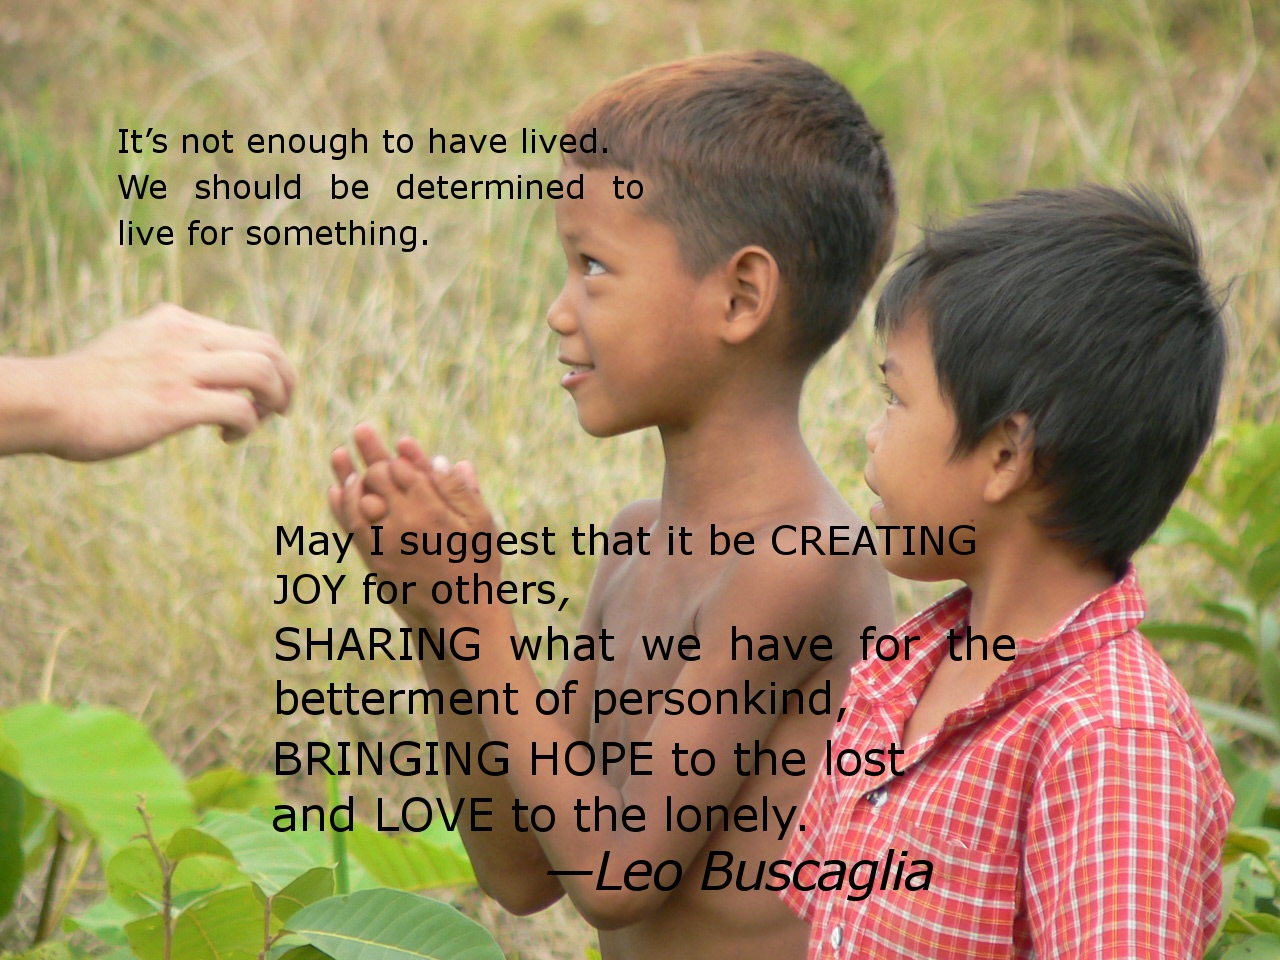 an essay on the joy of helping others quotes about being helped by others quotesgram quotesgram